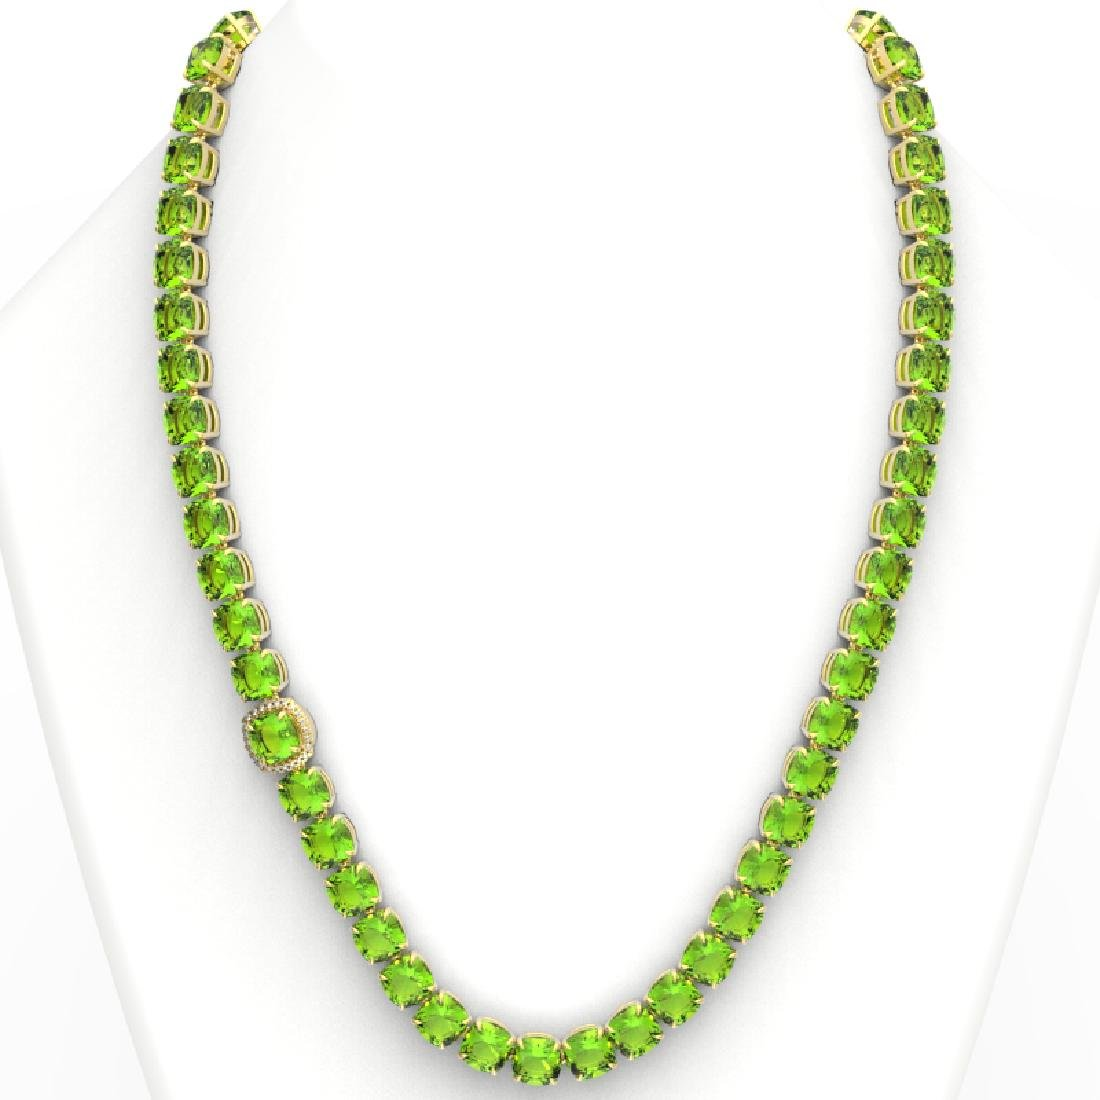 100 CTW Peridot & VS/SI Diamond Solitaire Necklace 14K - 3